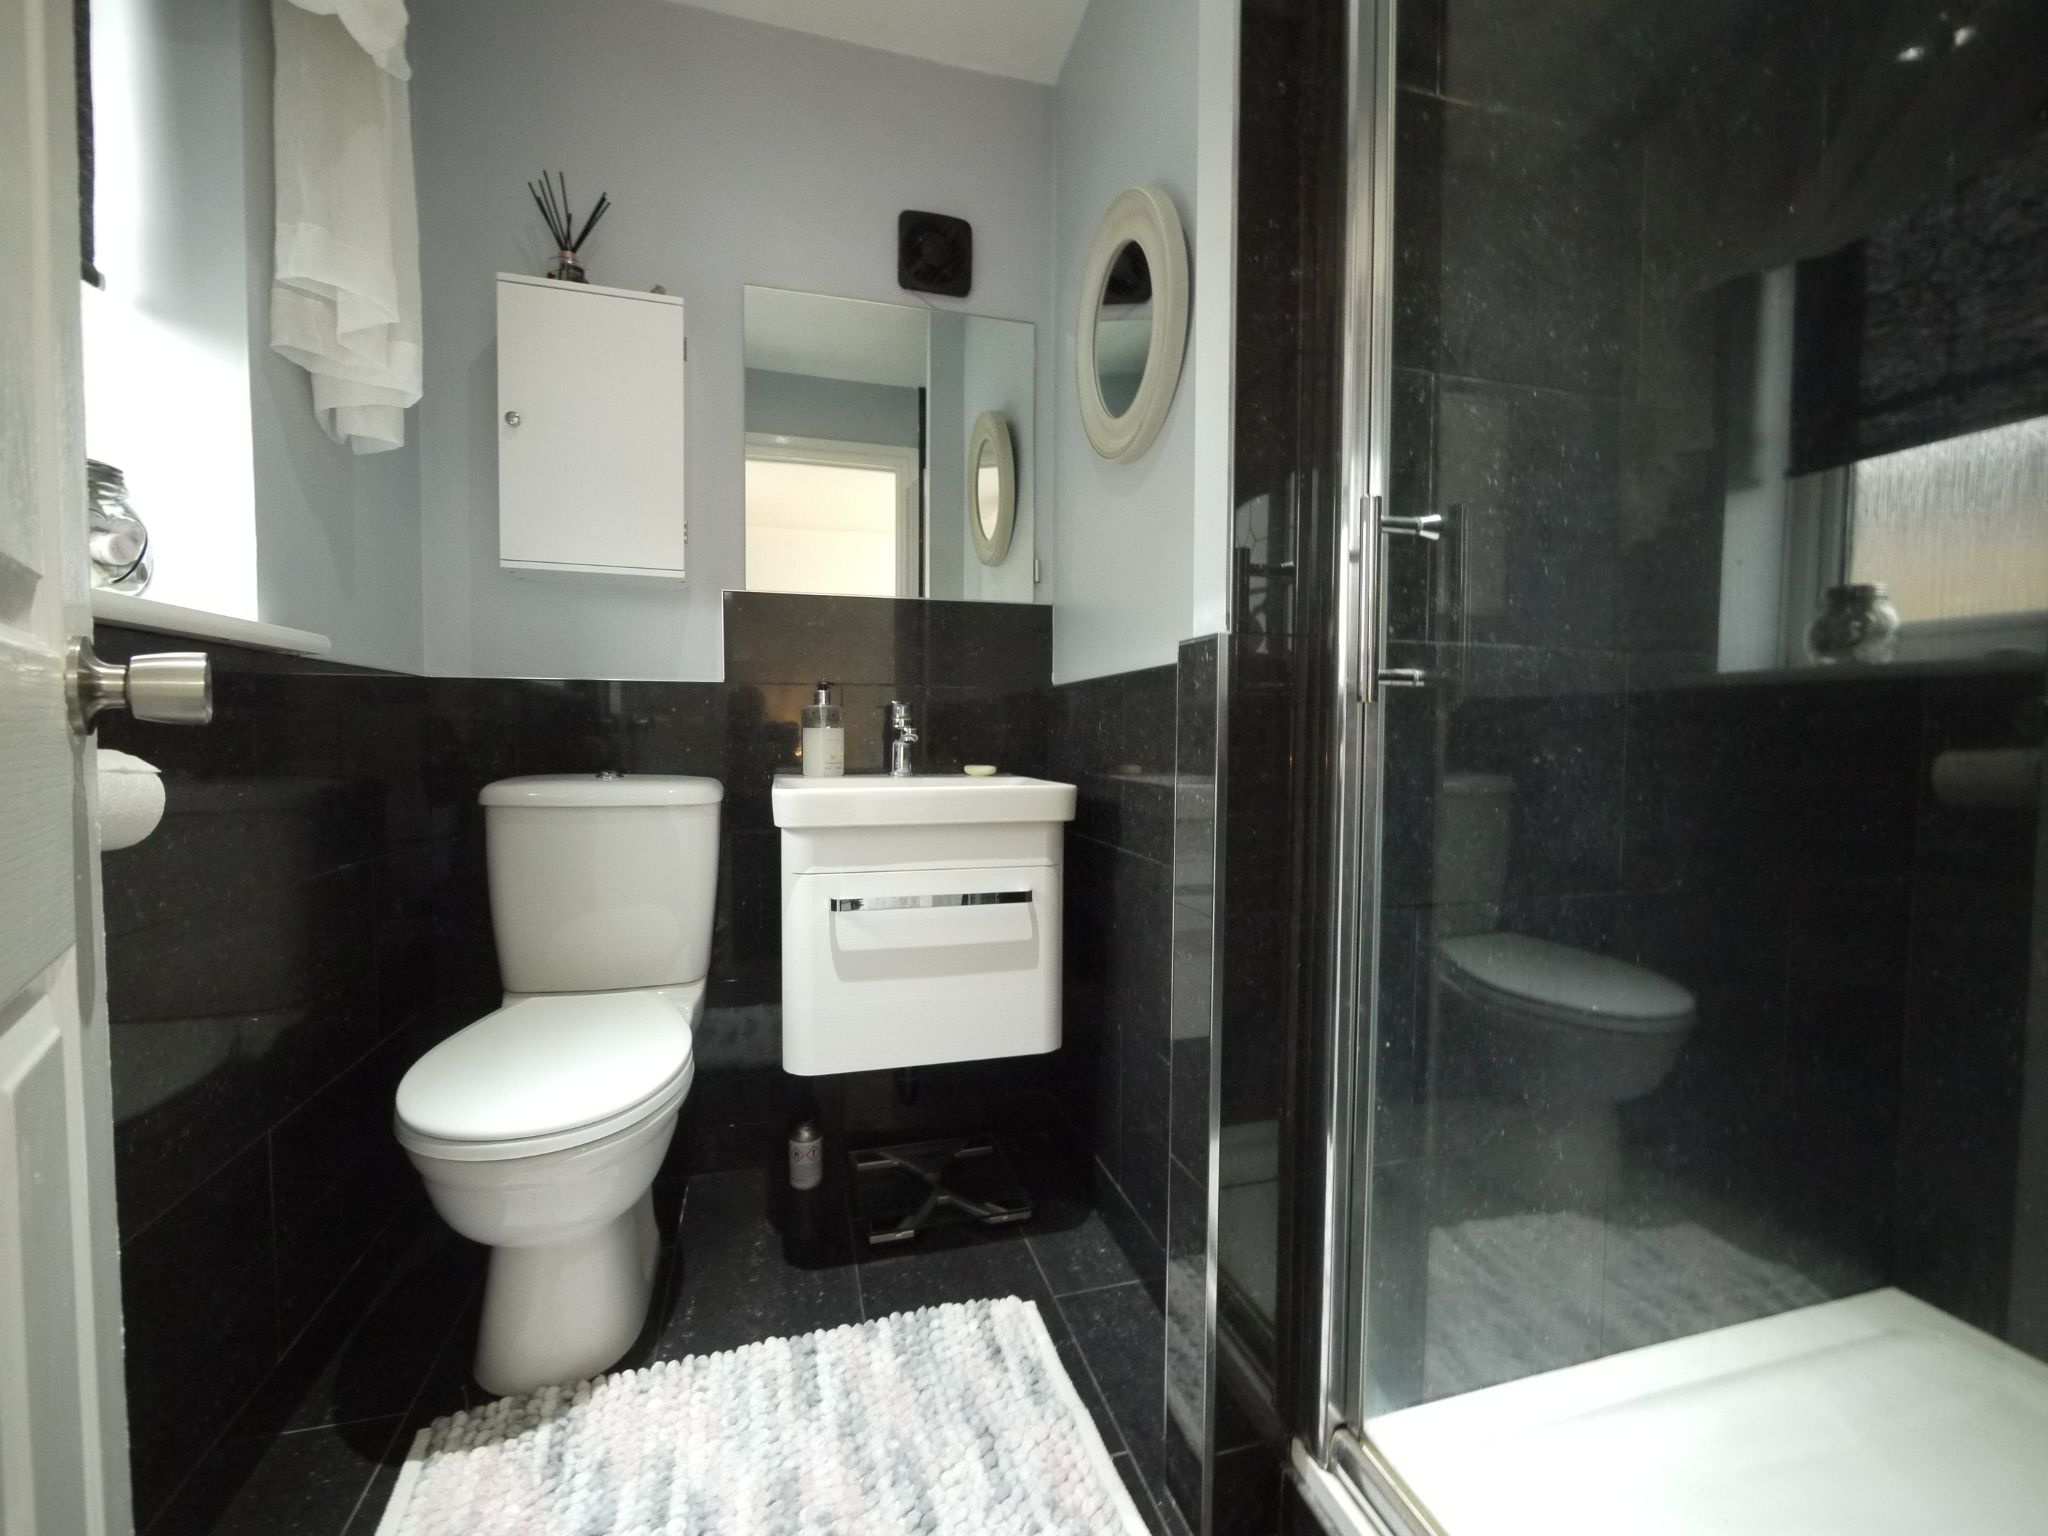 4 bedroom detached house SSTC in Brighouse - Ensuite.